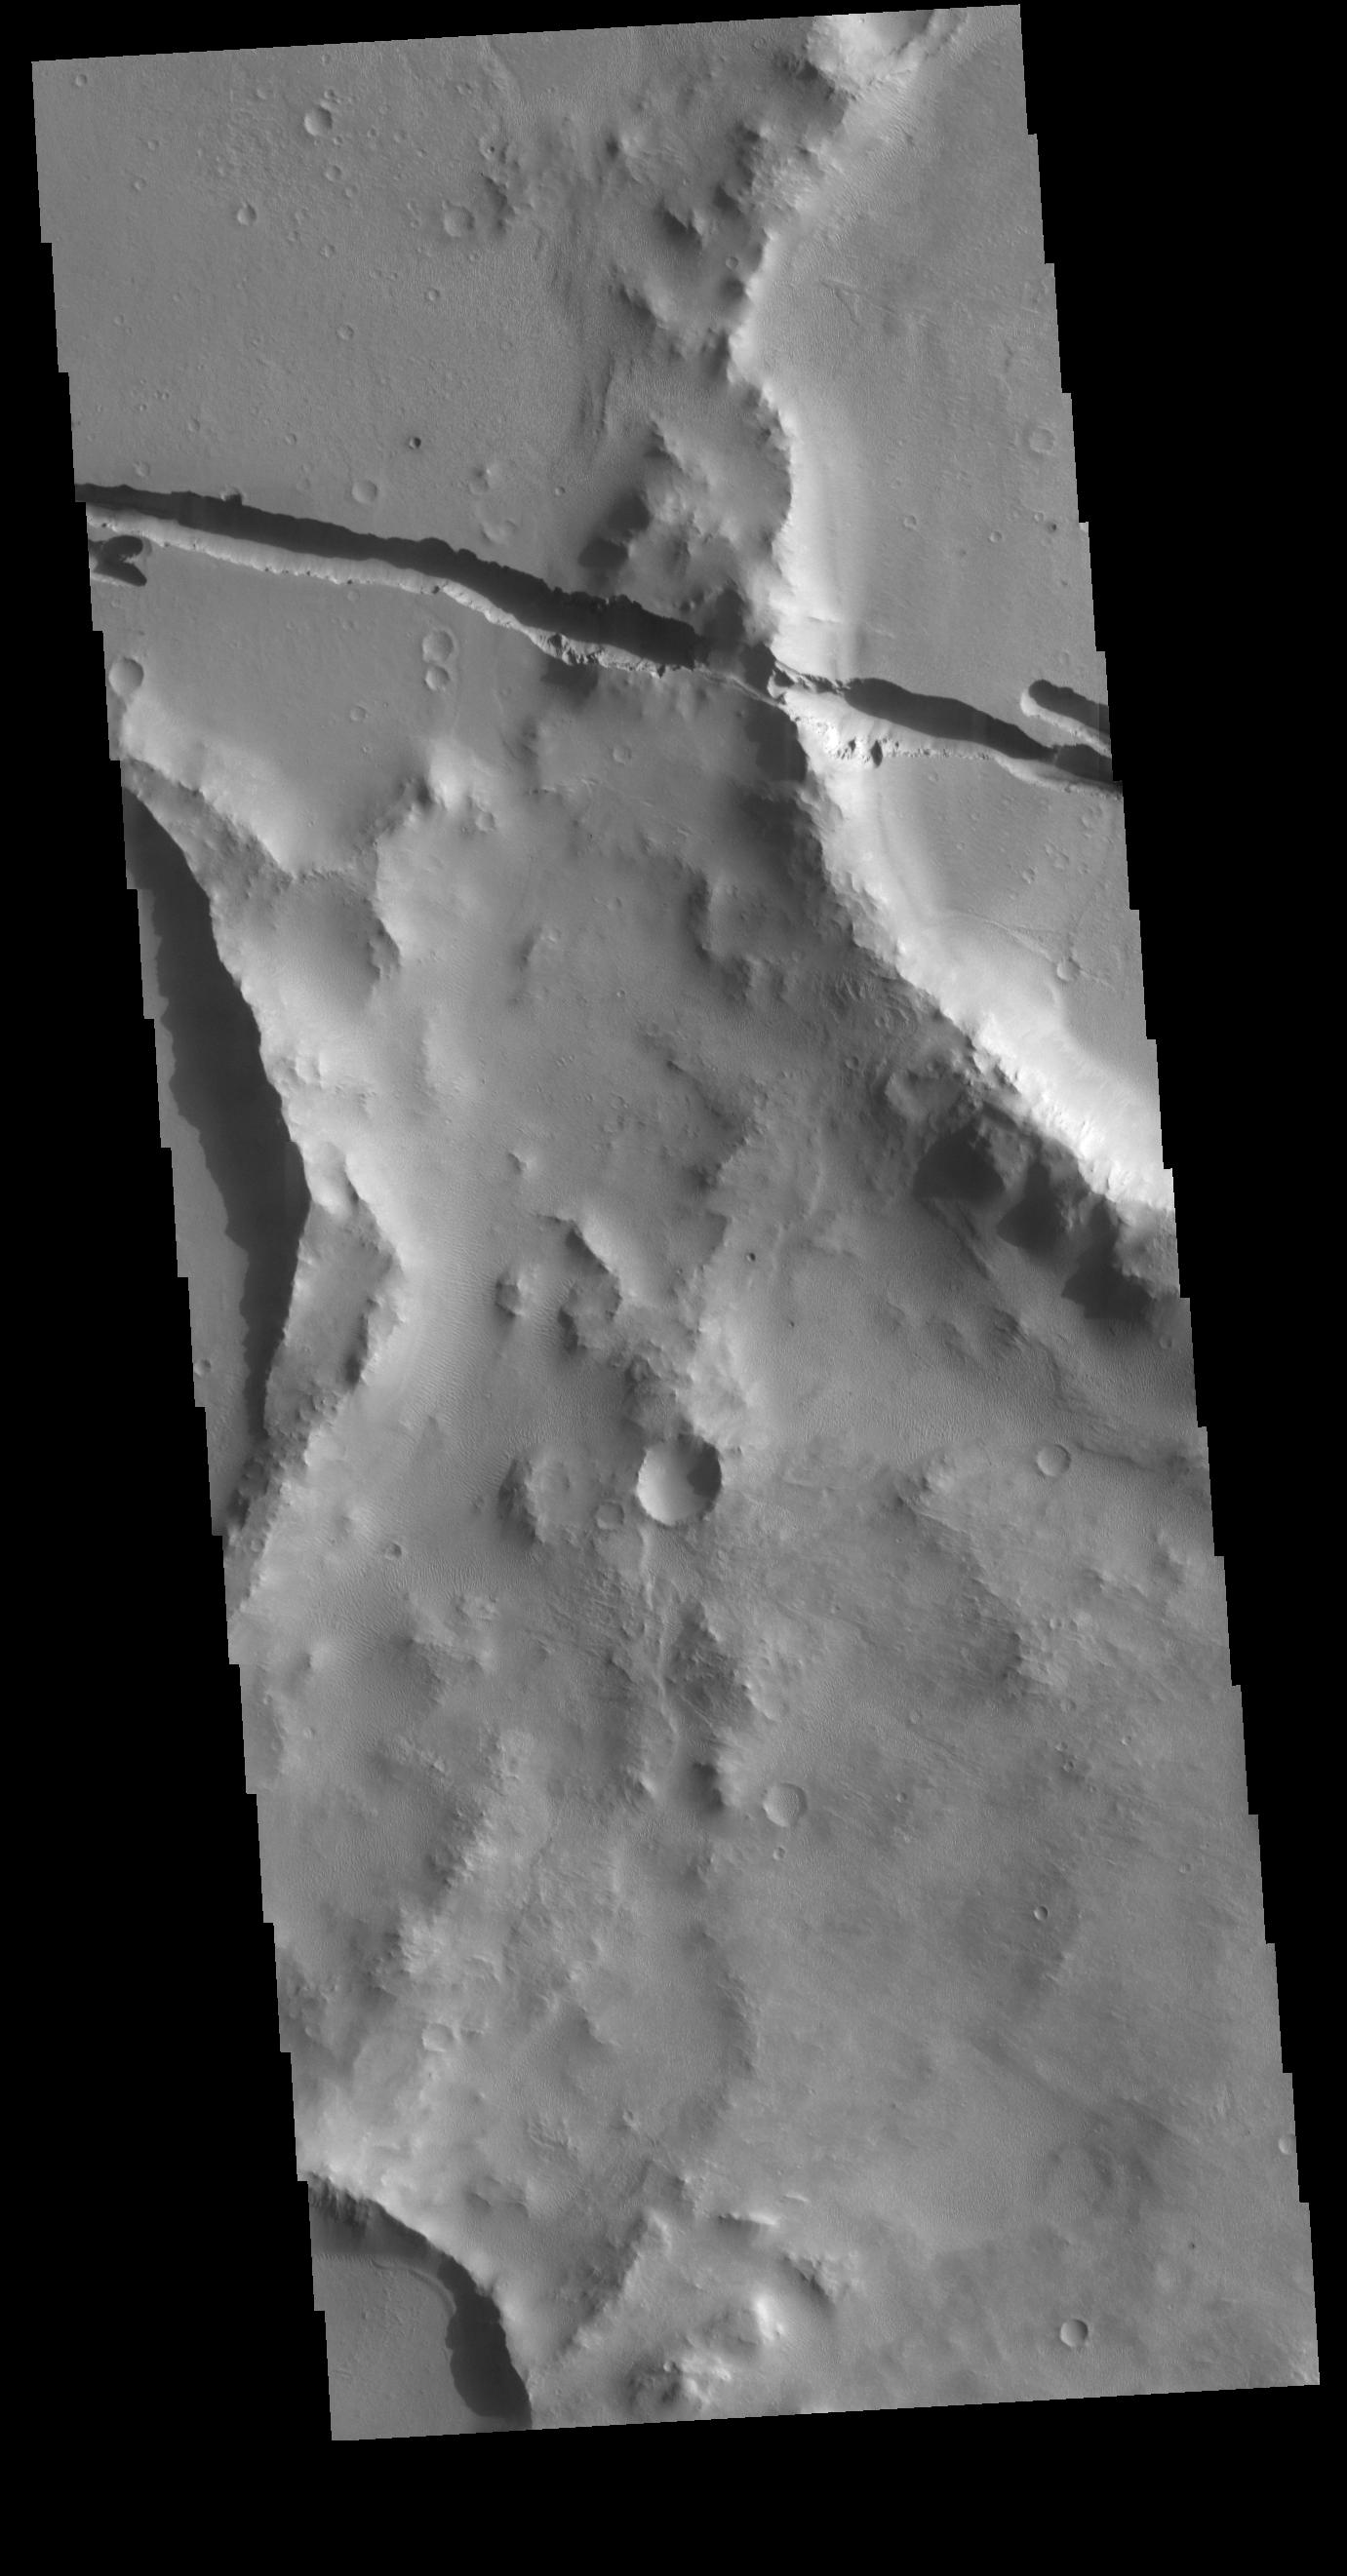 This image from NASAs Mars Odyssey shows a section of Cerberus Fossae.